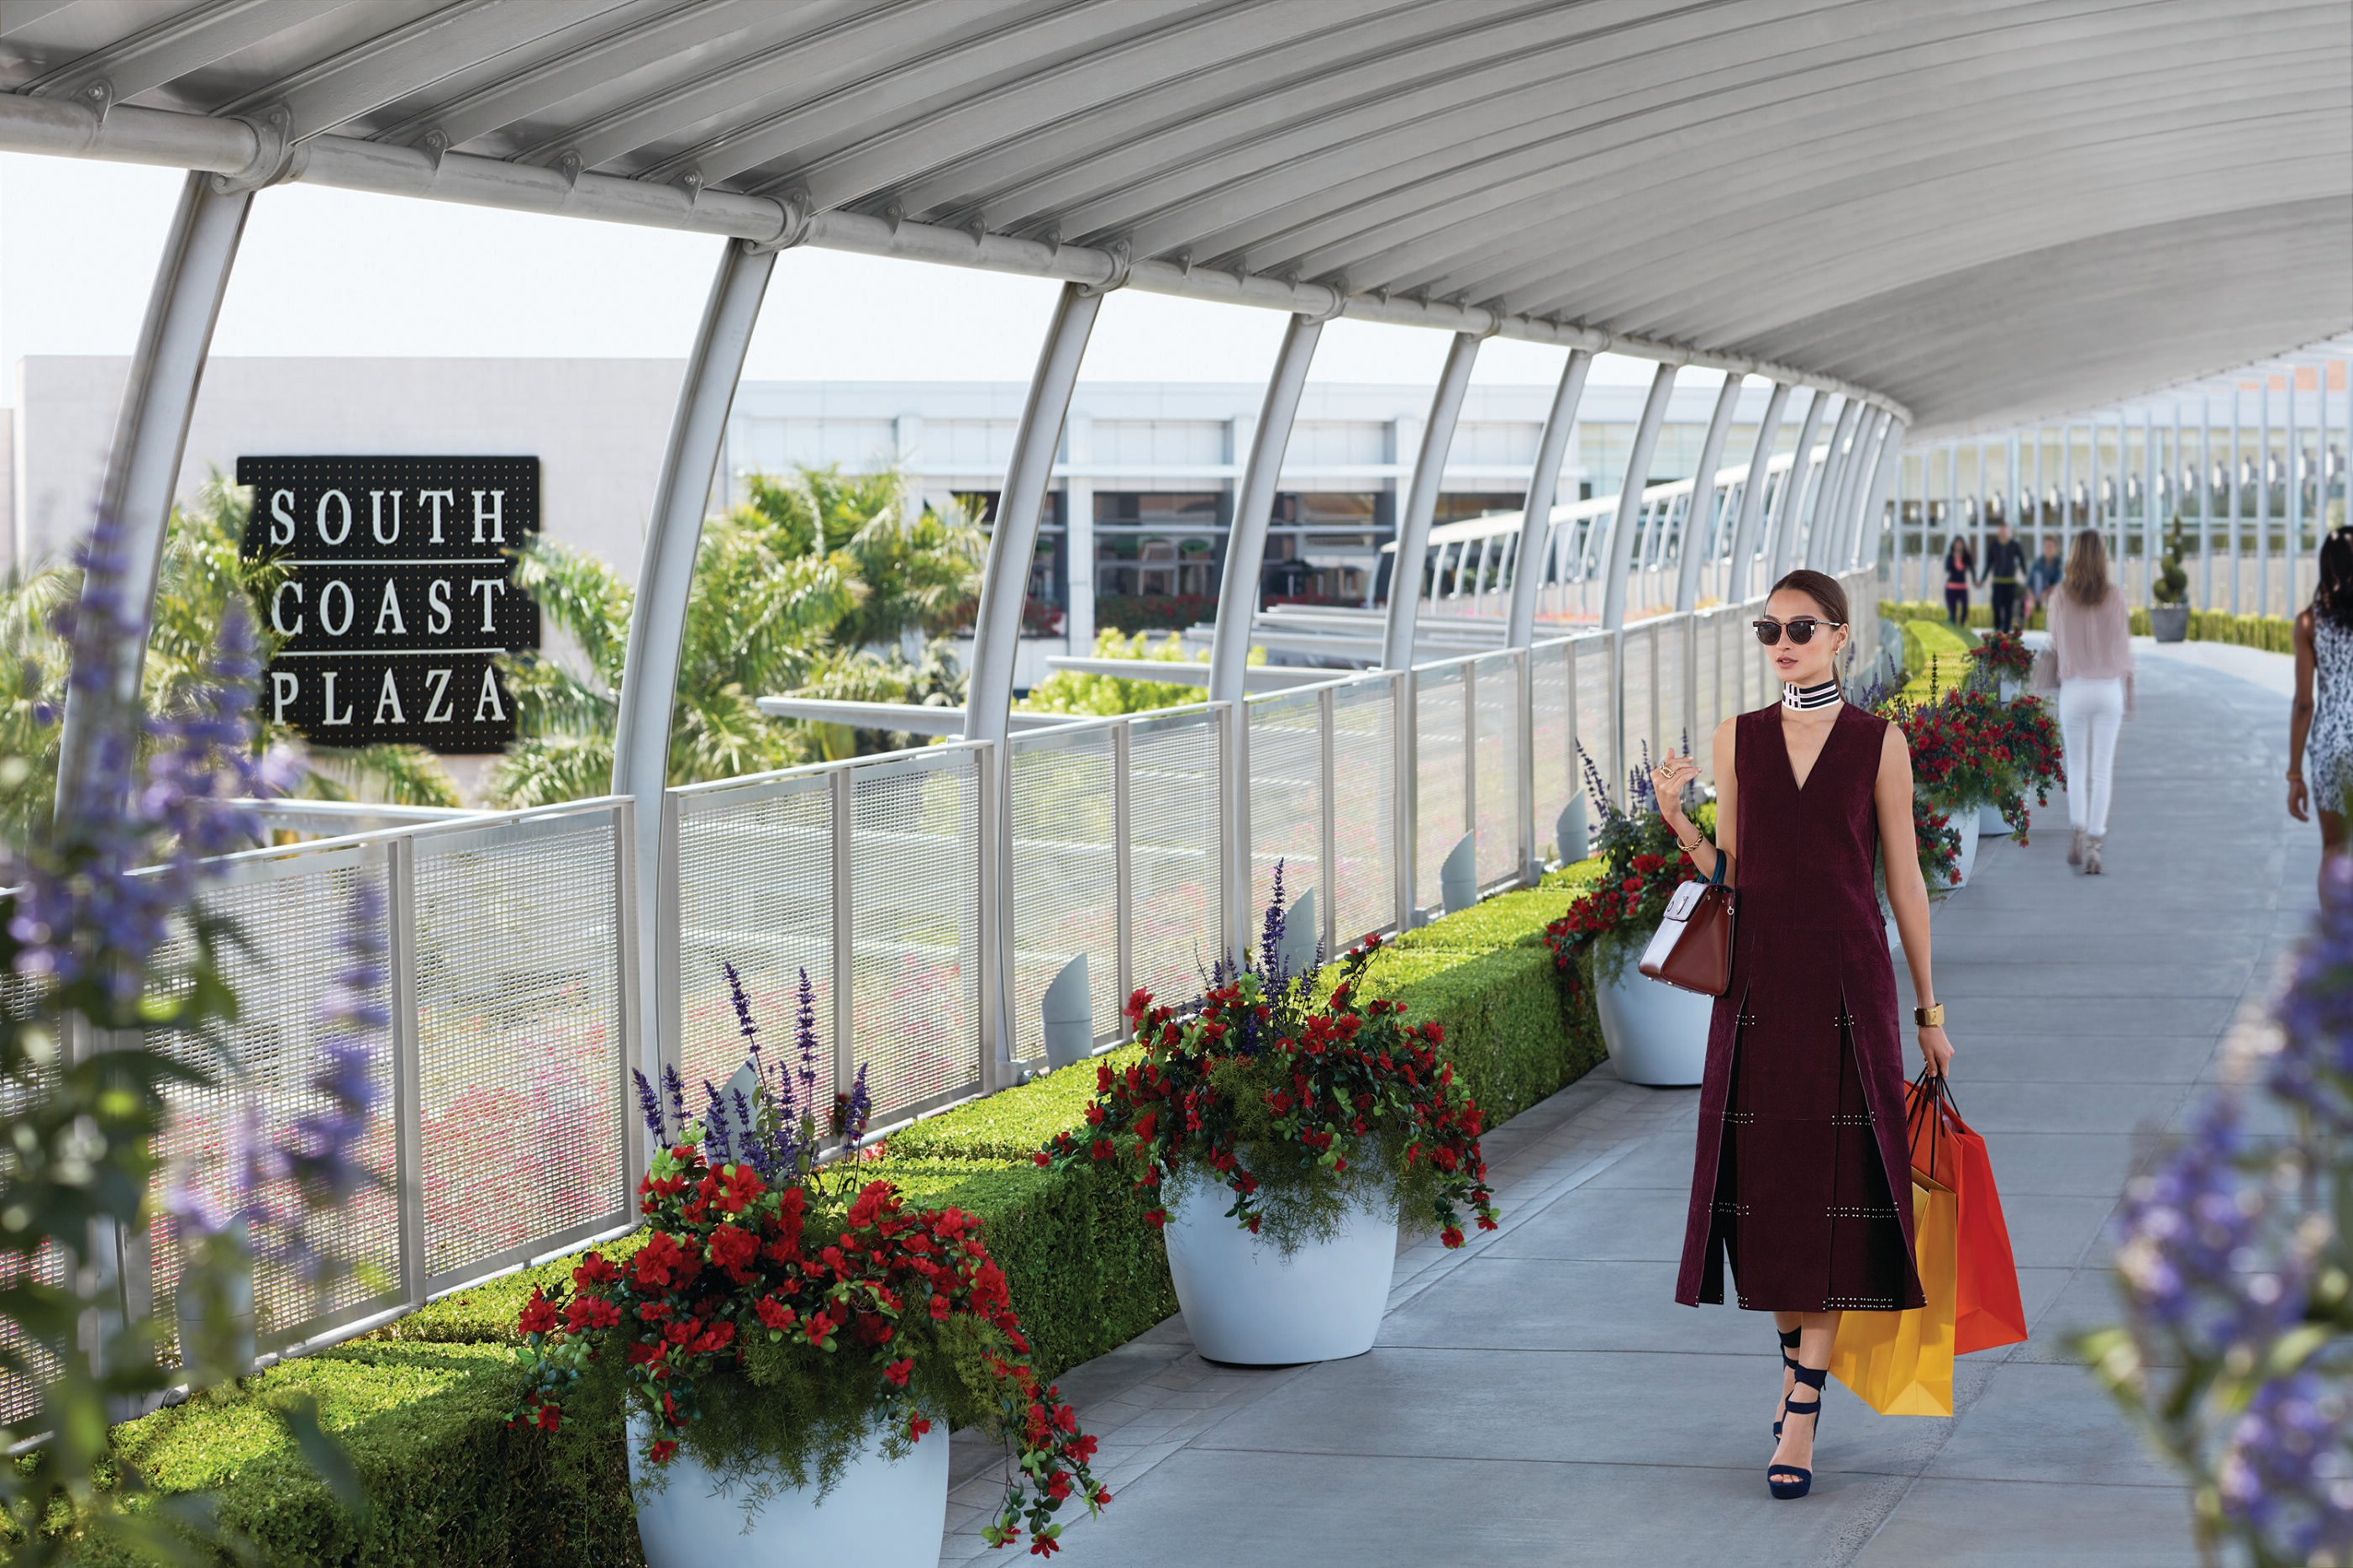 A women exits the mall down an elevated pathway carrying shopping bags at South Coast Plaza.